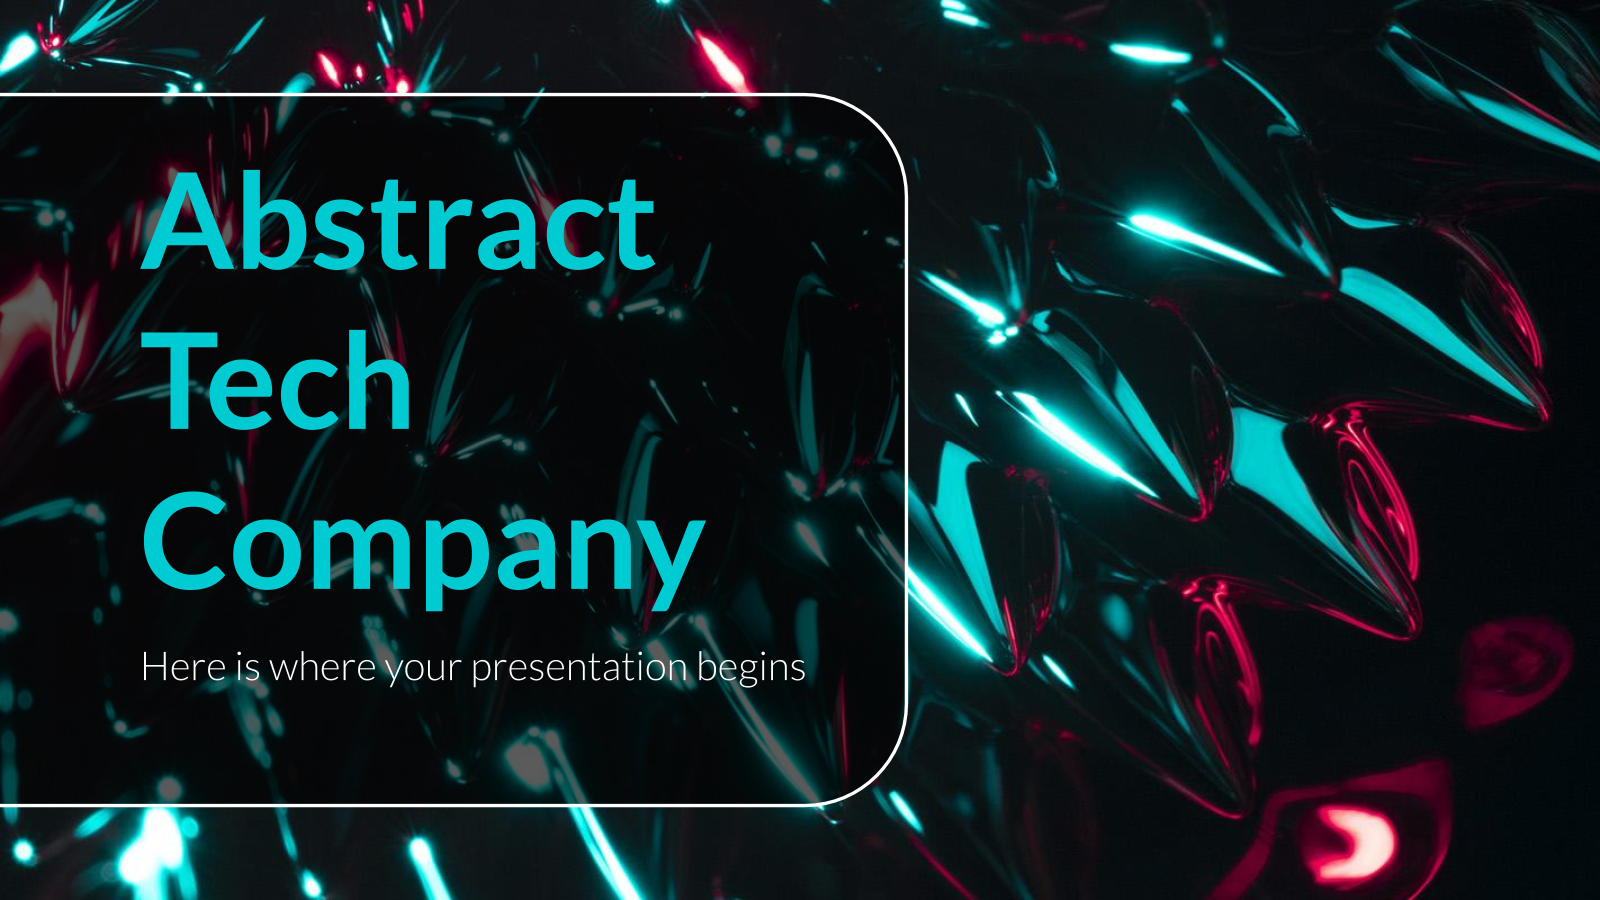 Abstract Tech Company presentation template